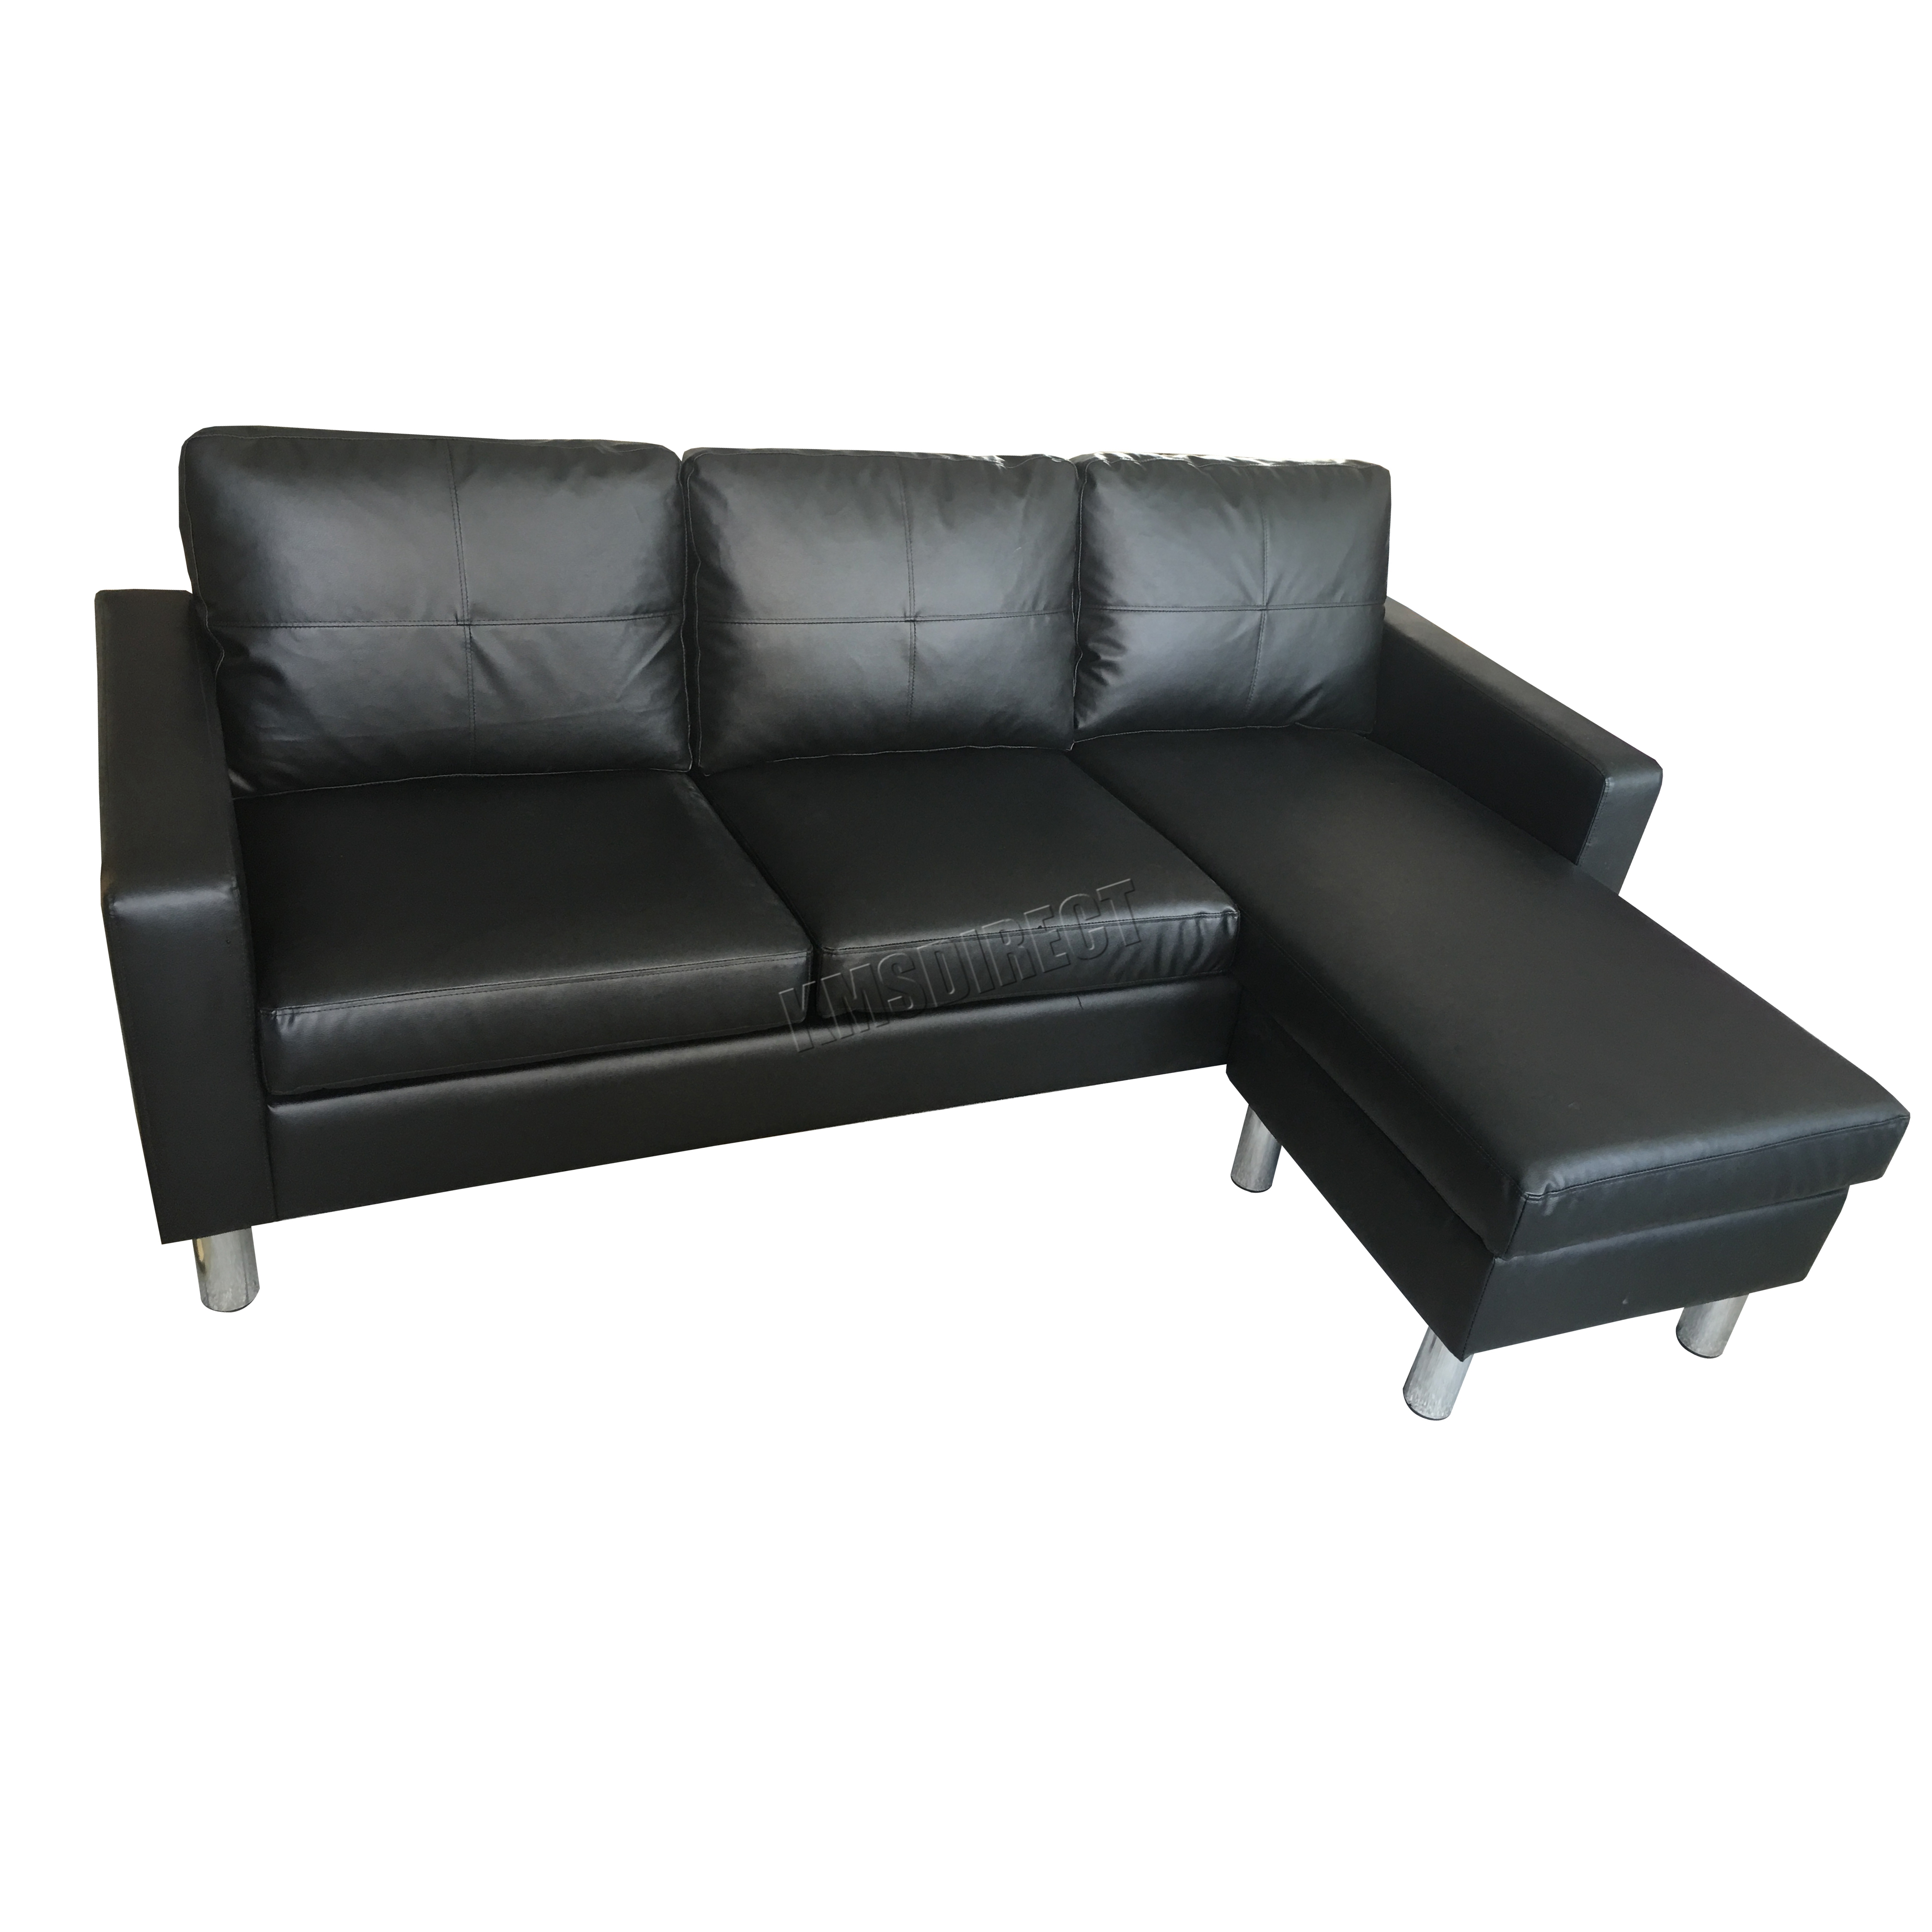 Foxhunter modern pu l shaped corner 3 seater sofa with for 3 seater with chaise lounge